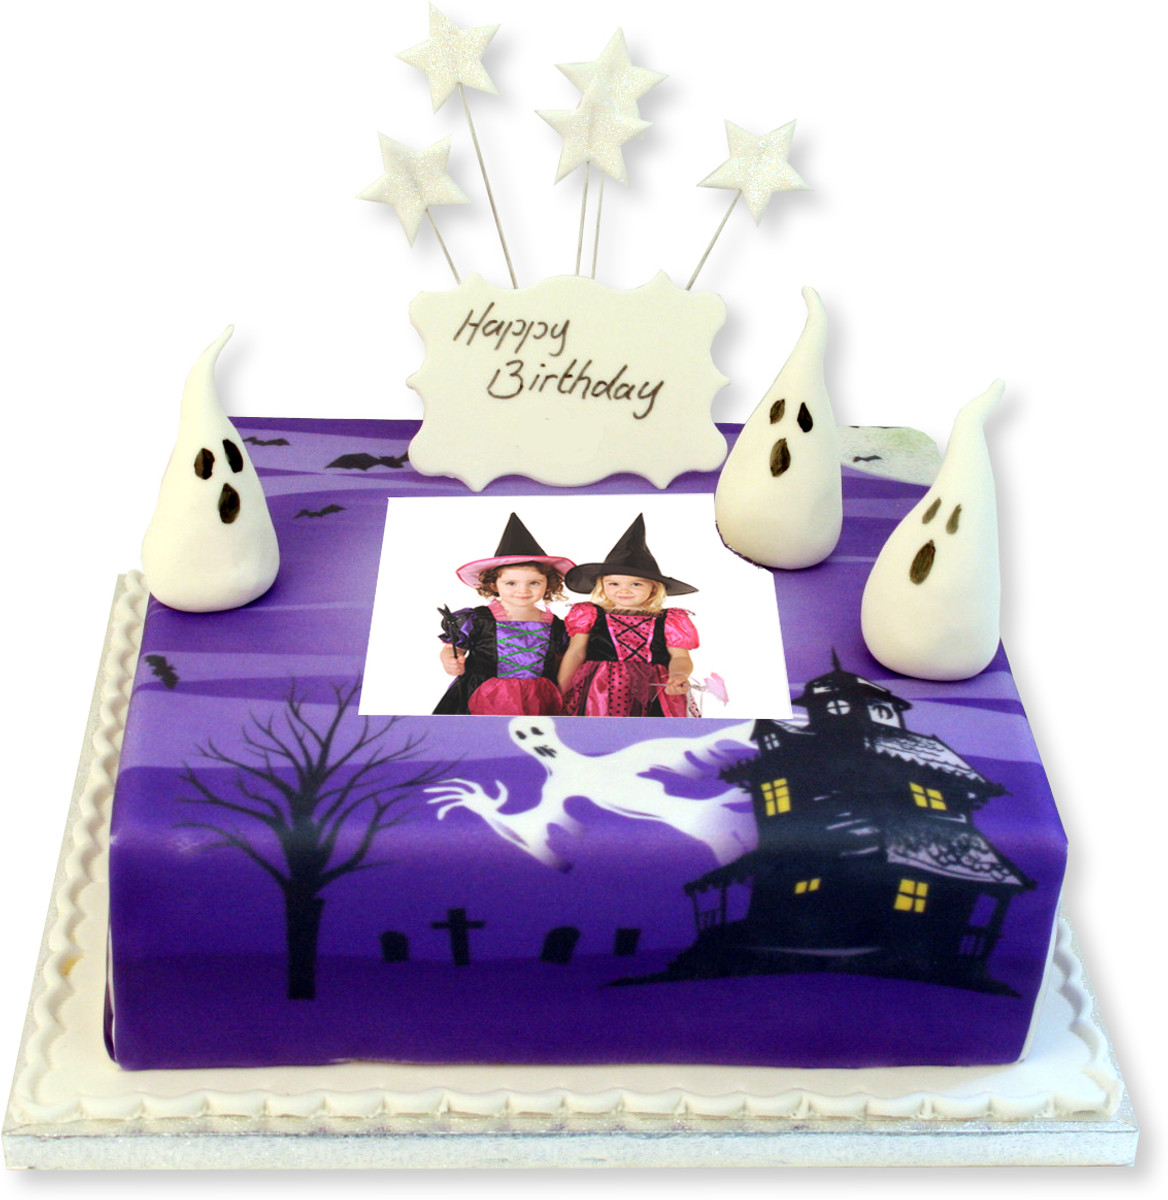 Fabulous Scary Photo Cake Birthday Cakes The Brilliant Bakers Funny Birthday Cards Online Inifofree Goldxyz